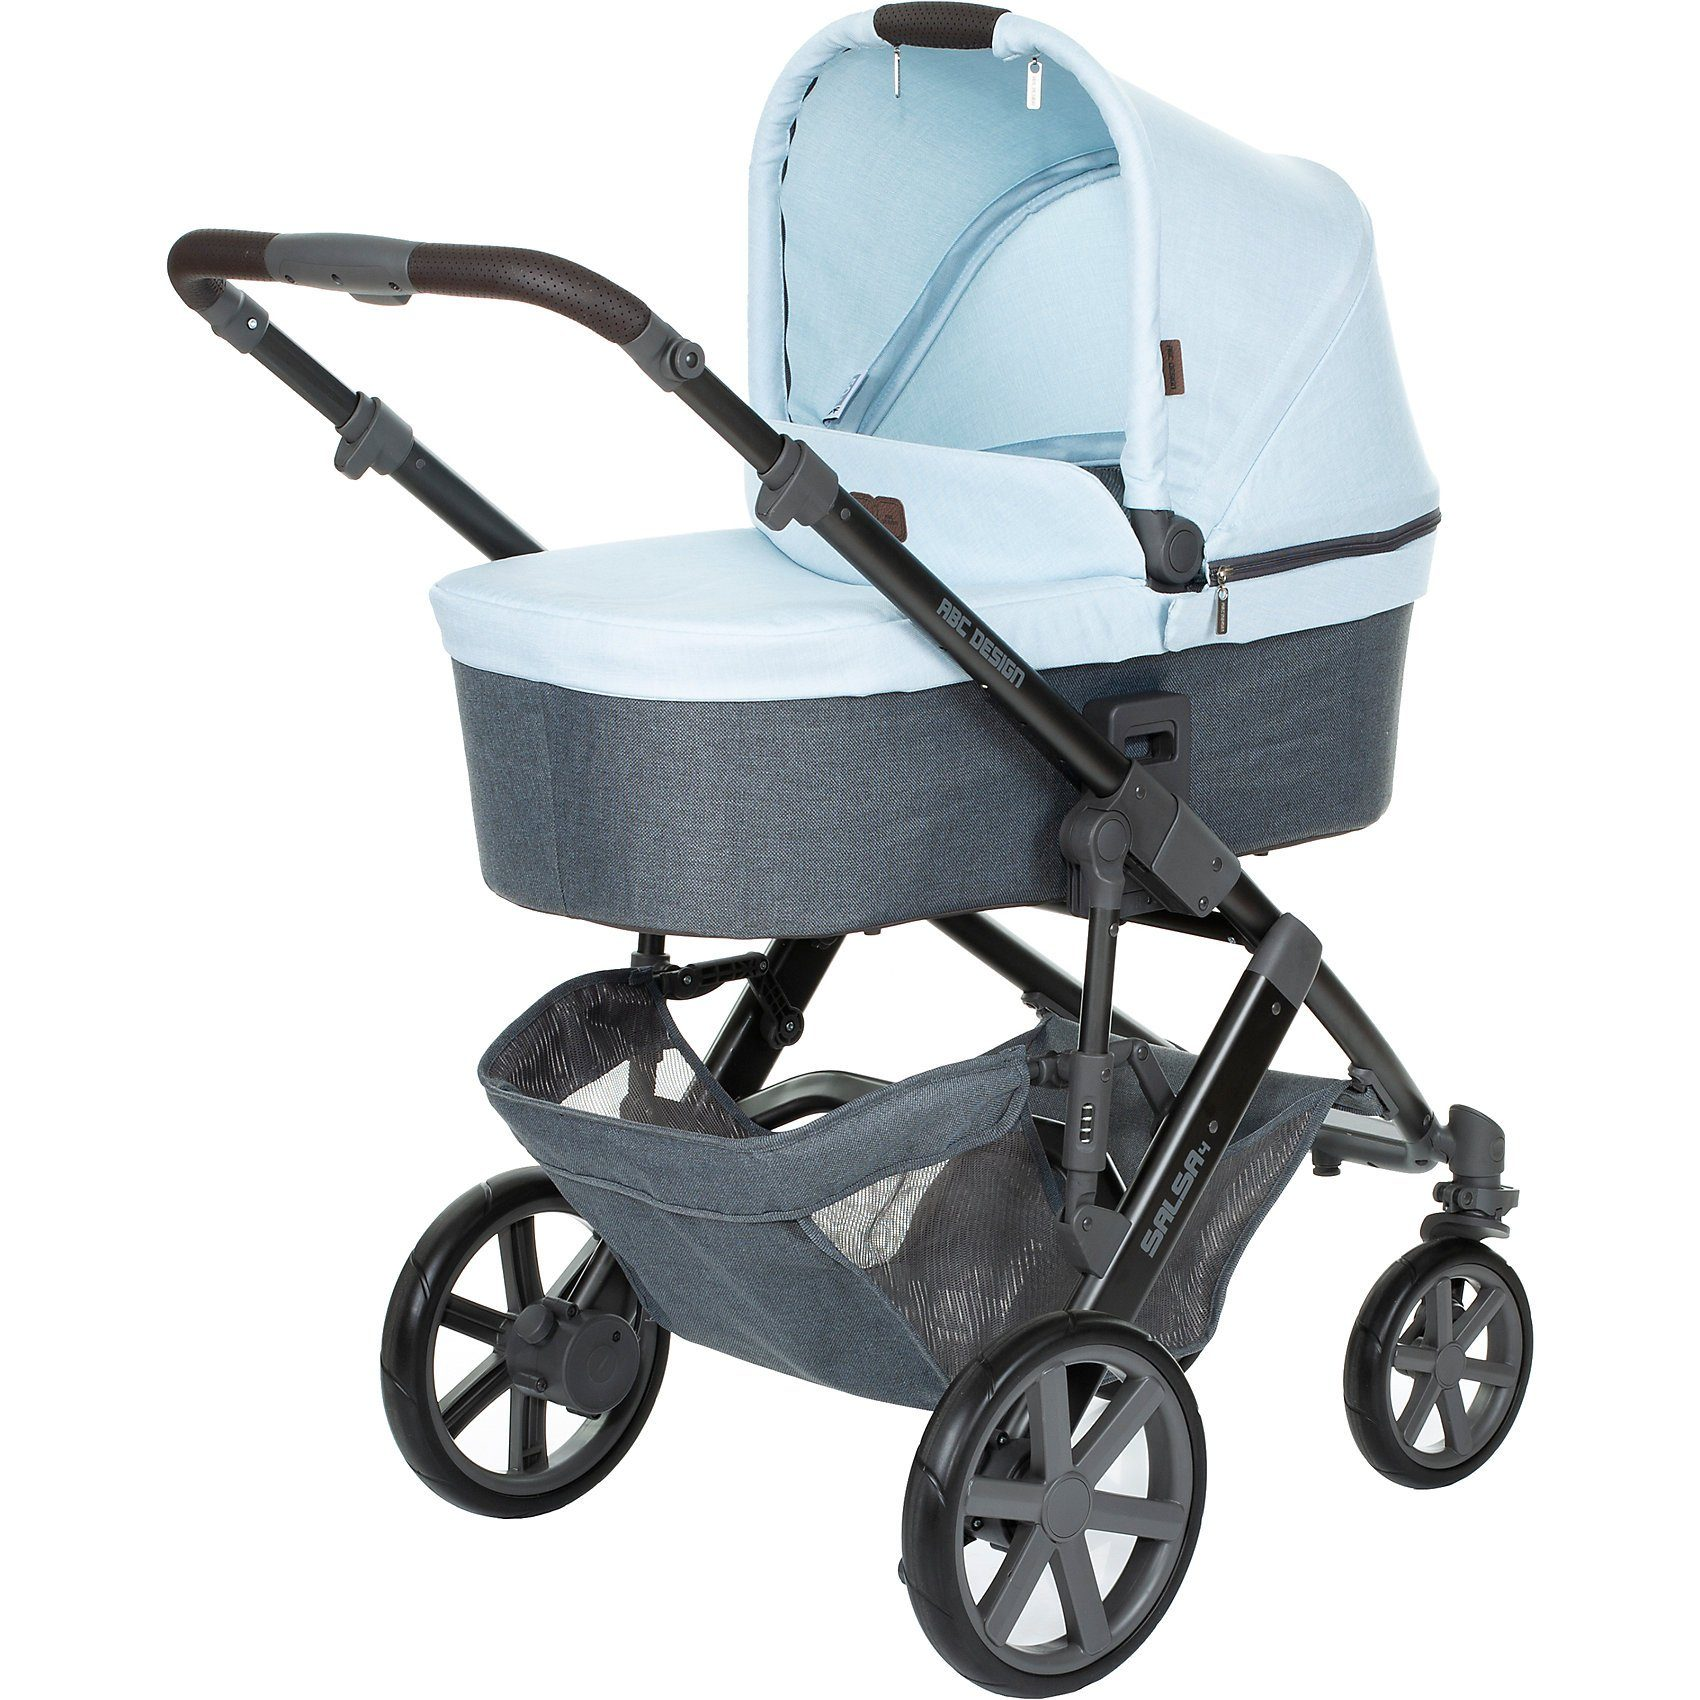 ABC Design Kombi Kinderwagen Salsa 4, ice, 2019